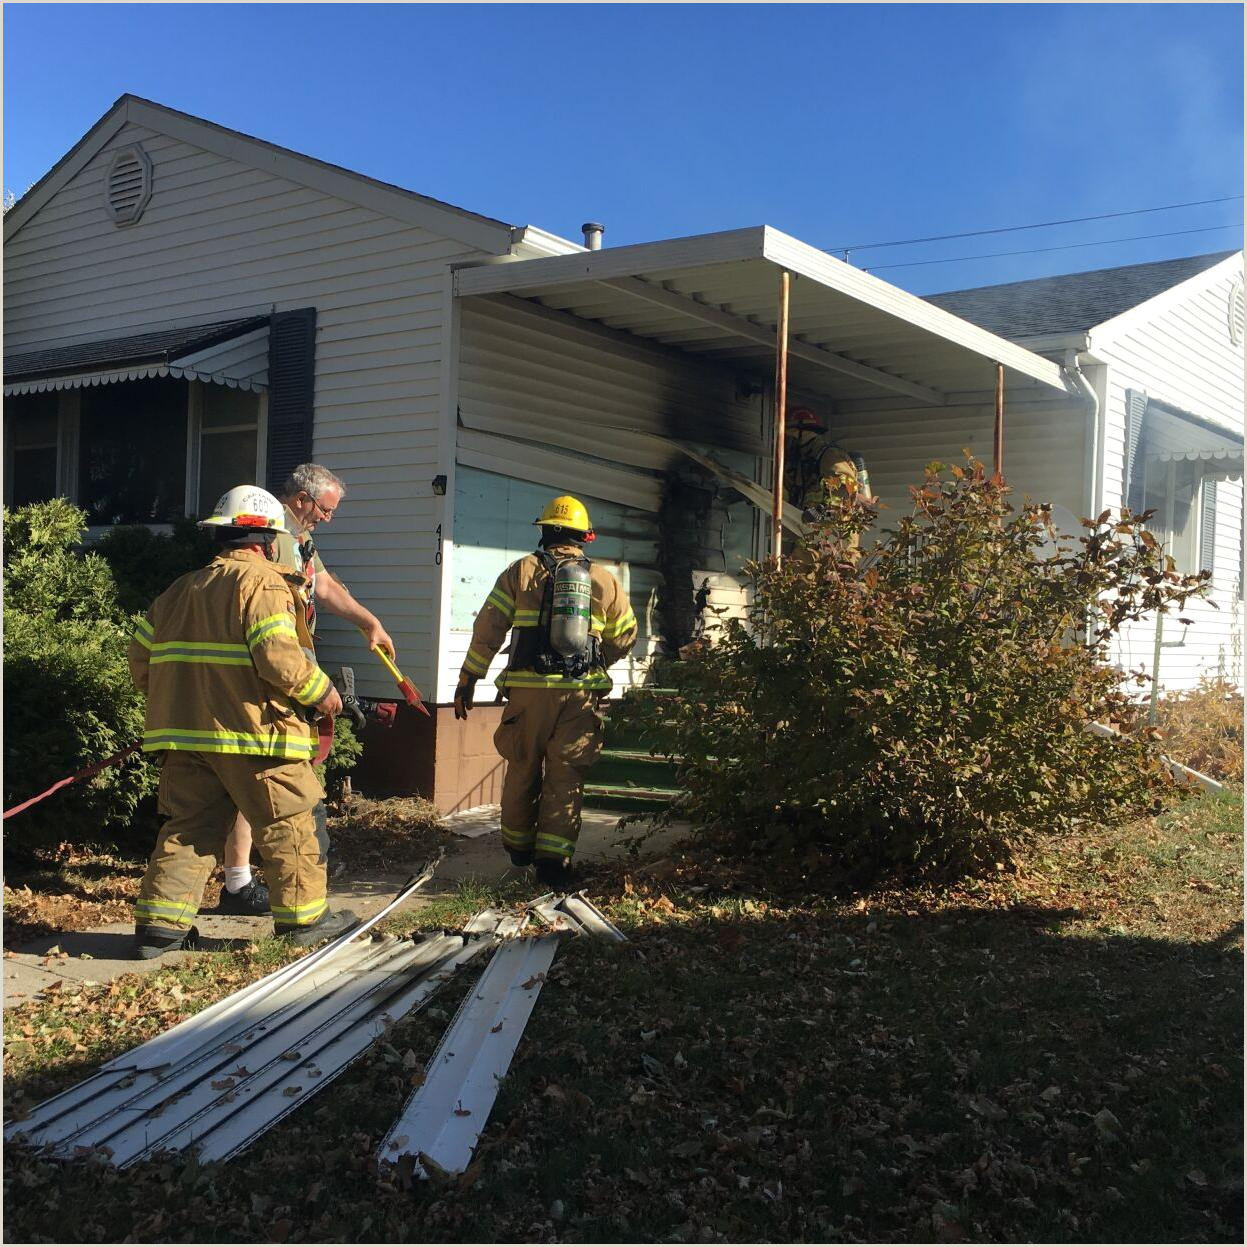 Unique Business Thank You Cards House Fire On Iowa Avenue Local News